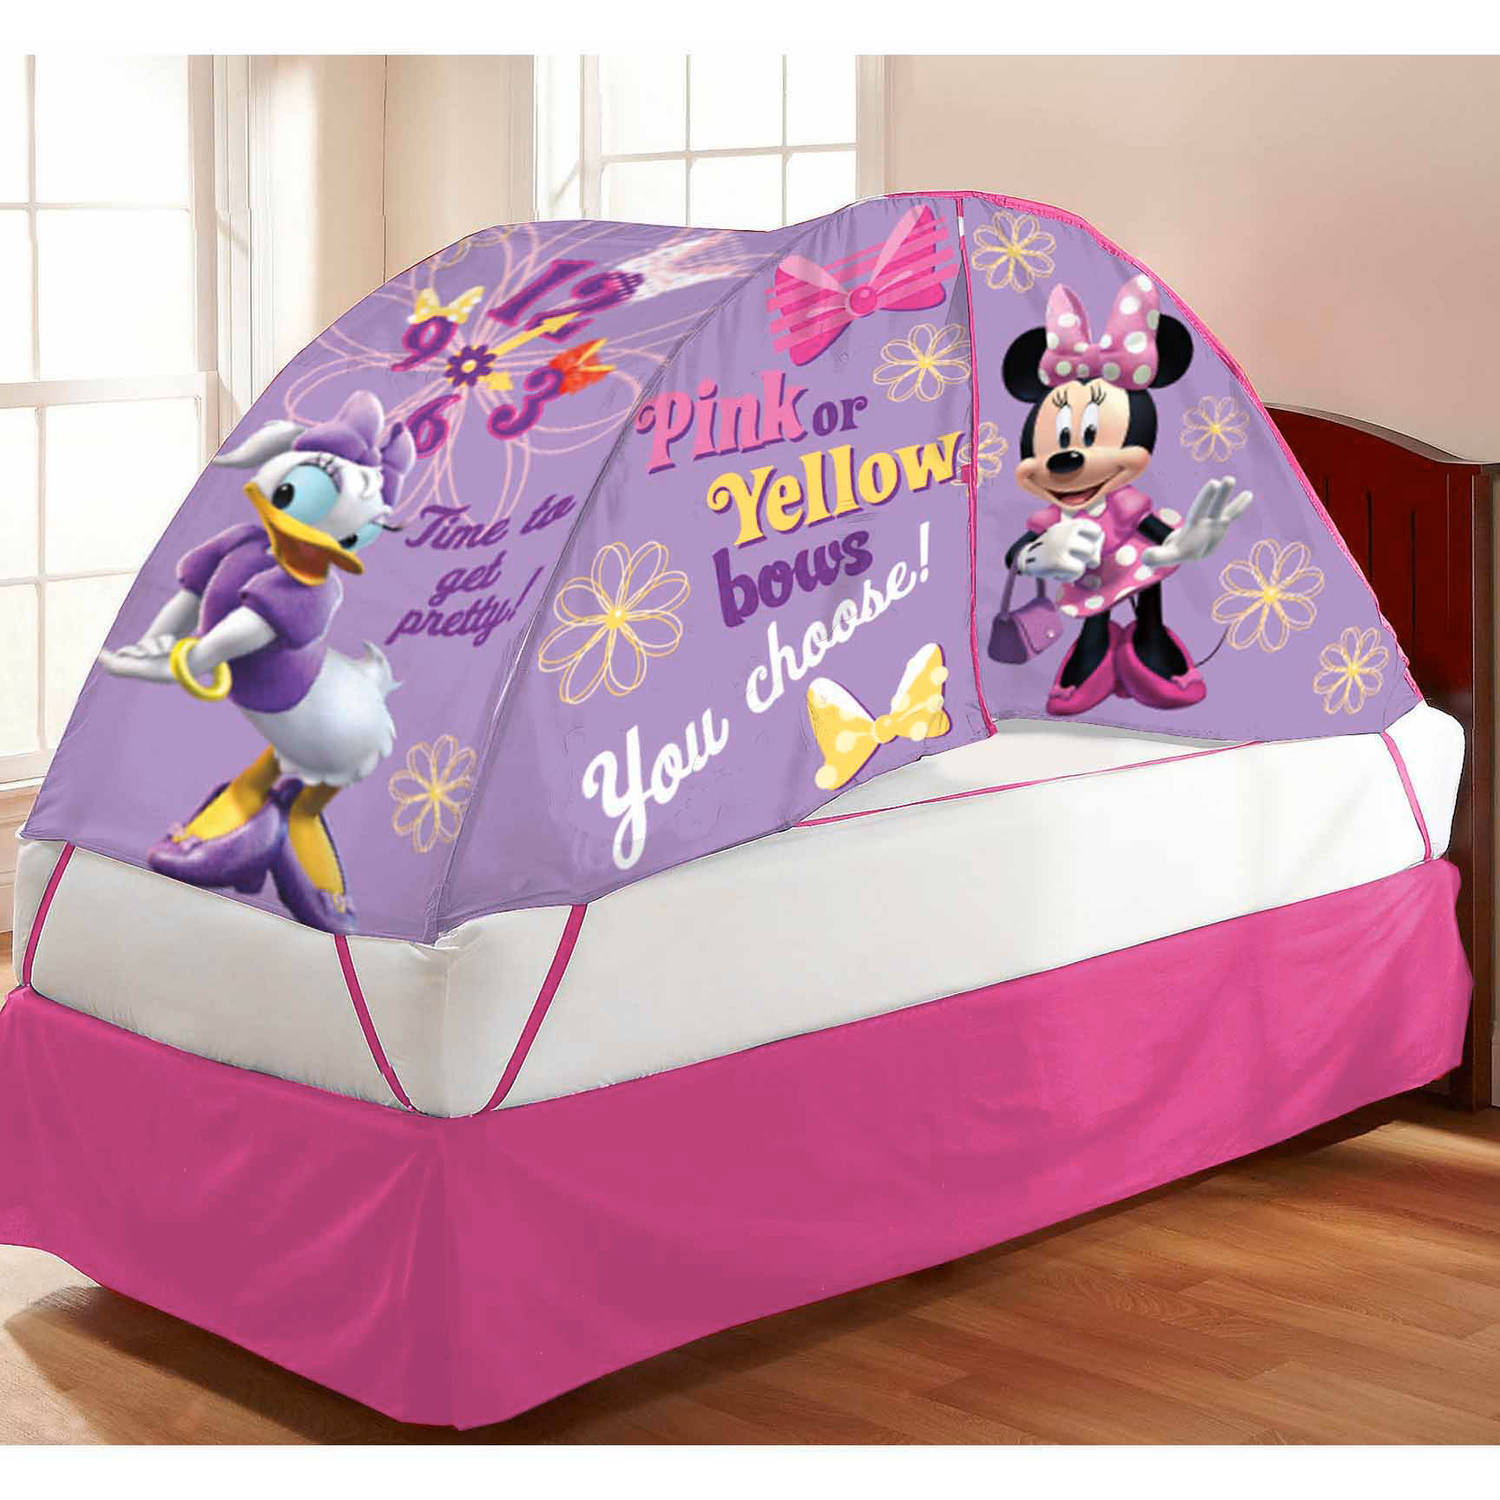 toddler bed and mattress set full size of bed frames:toddler bed with mattress included minnie mouse  twin jgwrgnz